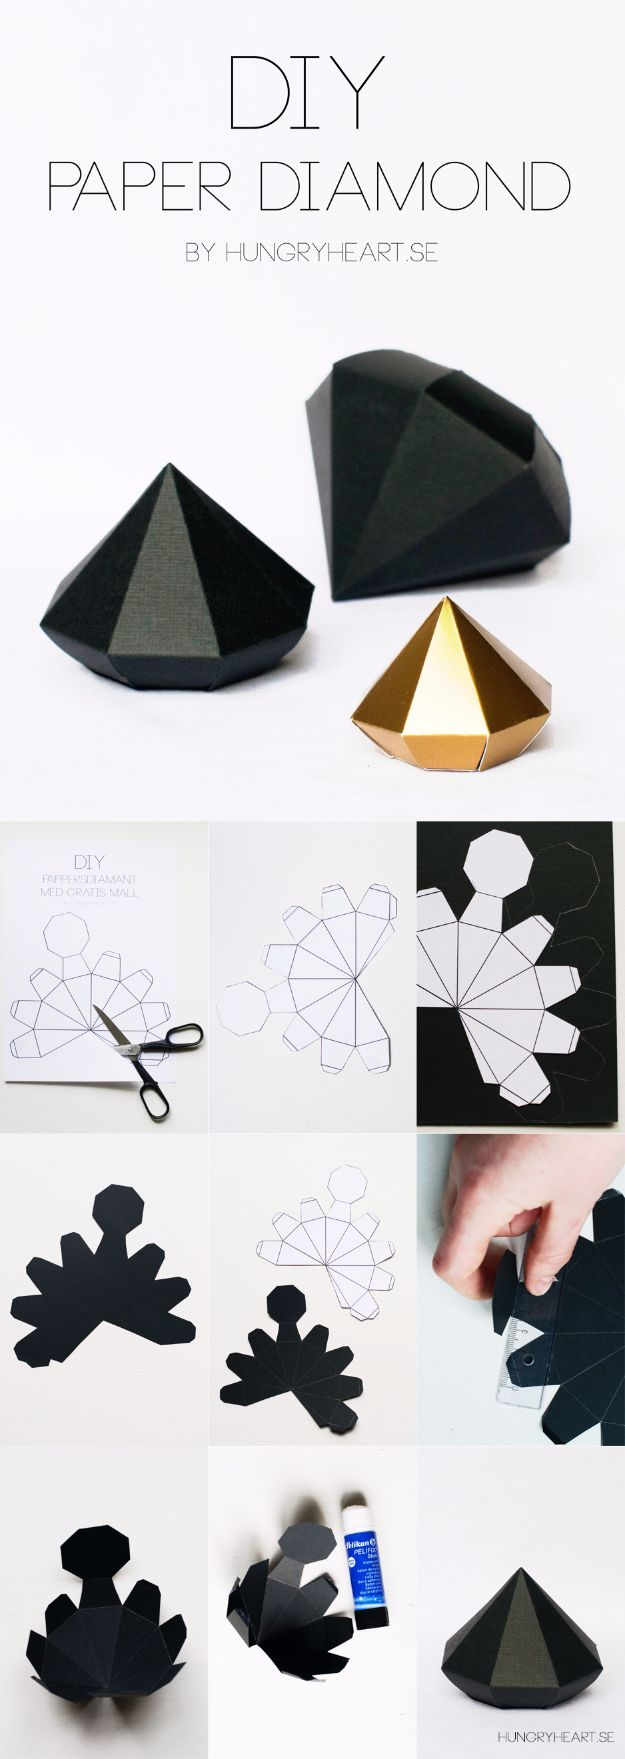 Best DIY Gifts for Girls - DIY Paper Diamond - Cute Crafts and DIY Projects that Make Cool DYI Gift Ideas for Young and Older Girls, Teens and Teenagers - Awesome Room and Home Decor for Bedroom, Fashion, Jewelry and Hair Accessories - Cheap Craft Projects To Make For a Girl for Christmas Presents http://diyjoy.com/diy-gifts-for-girls